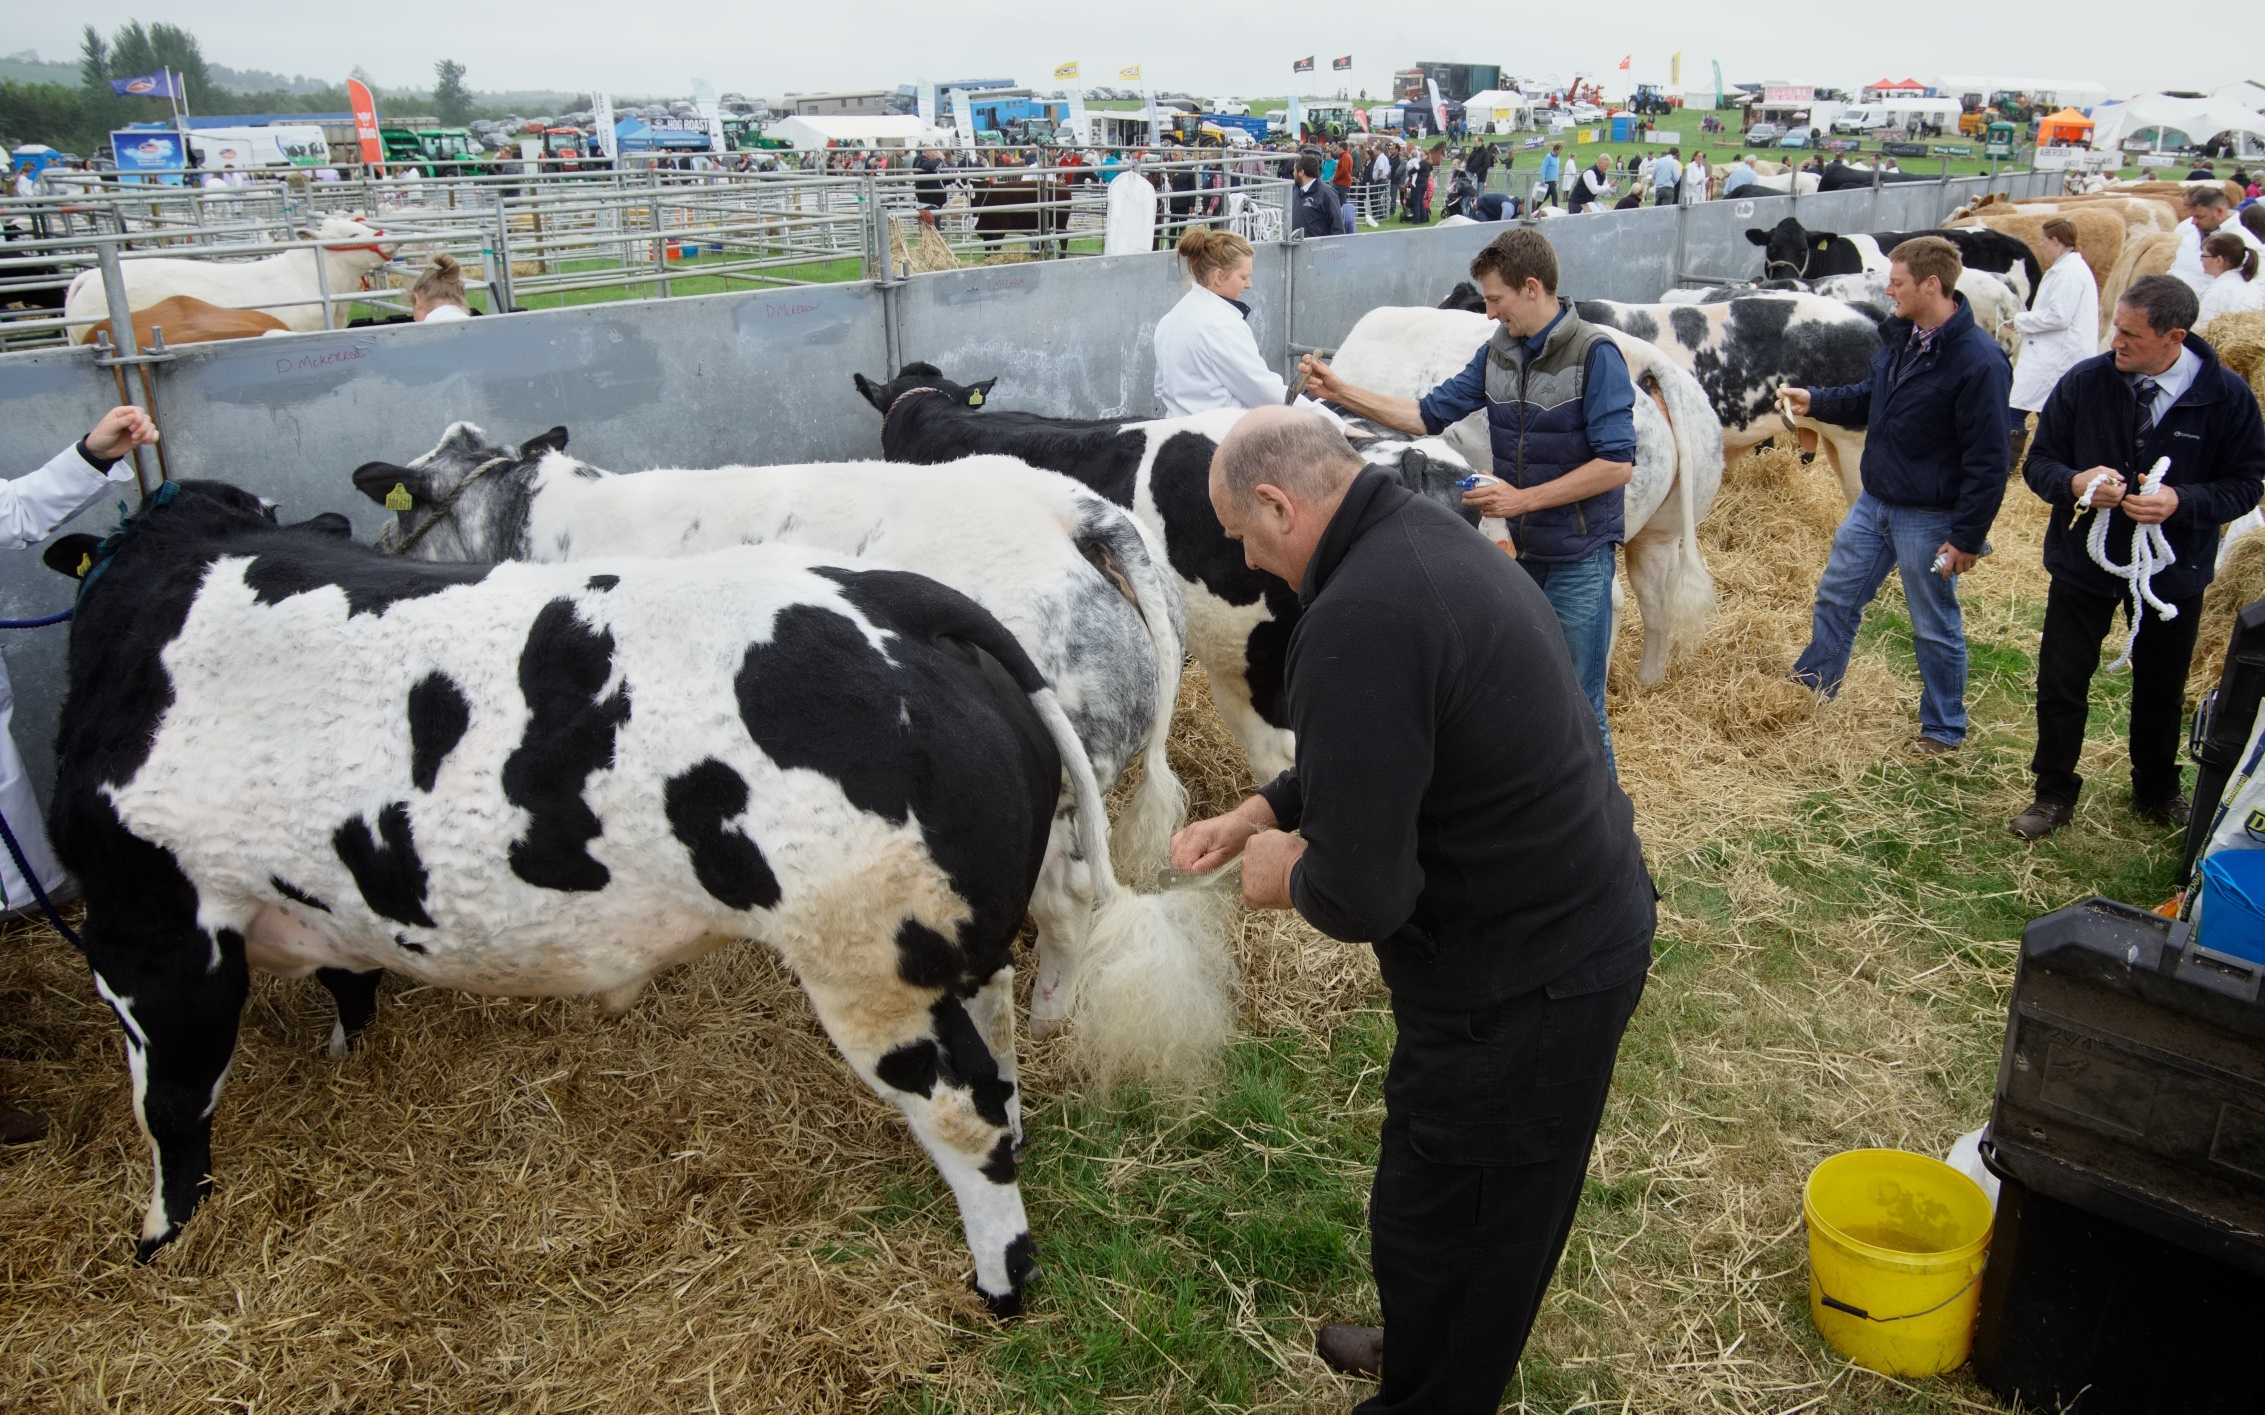 Breeders went to great lengths to impress the judges